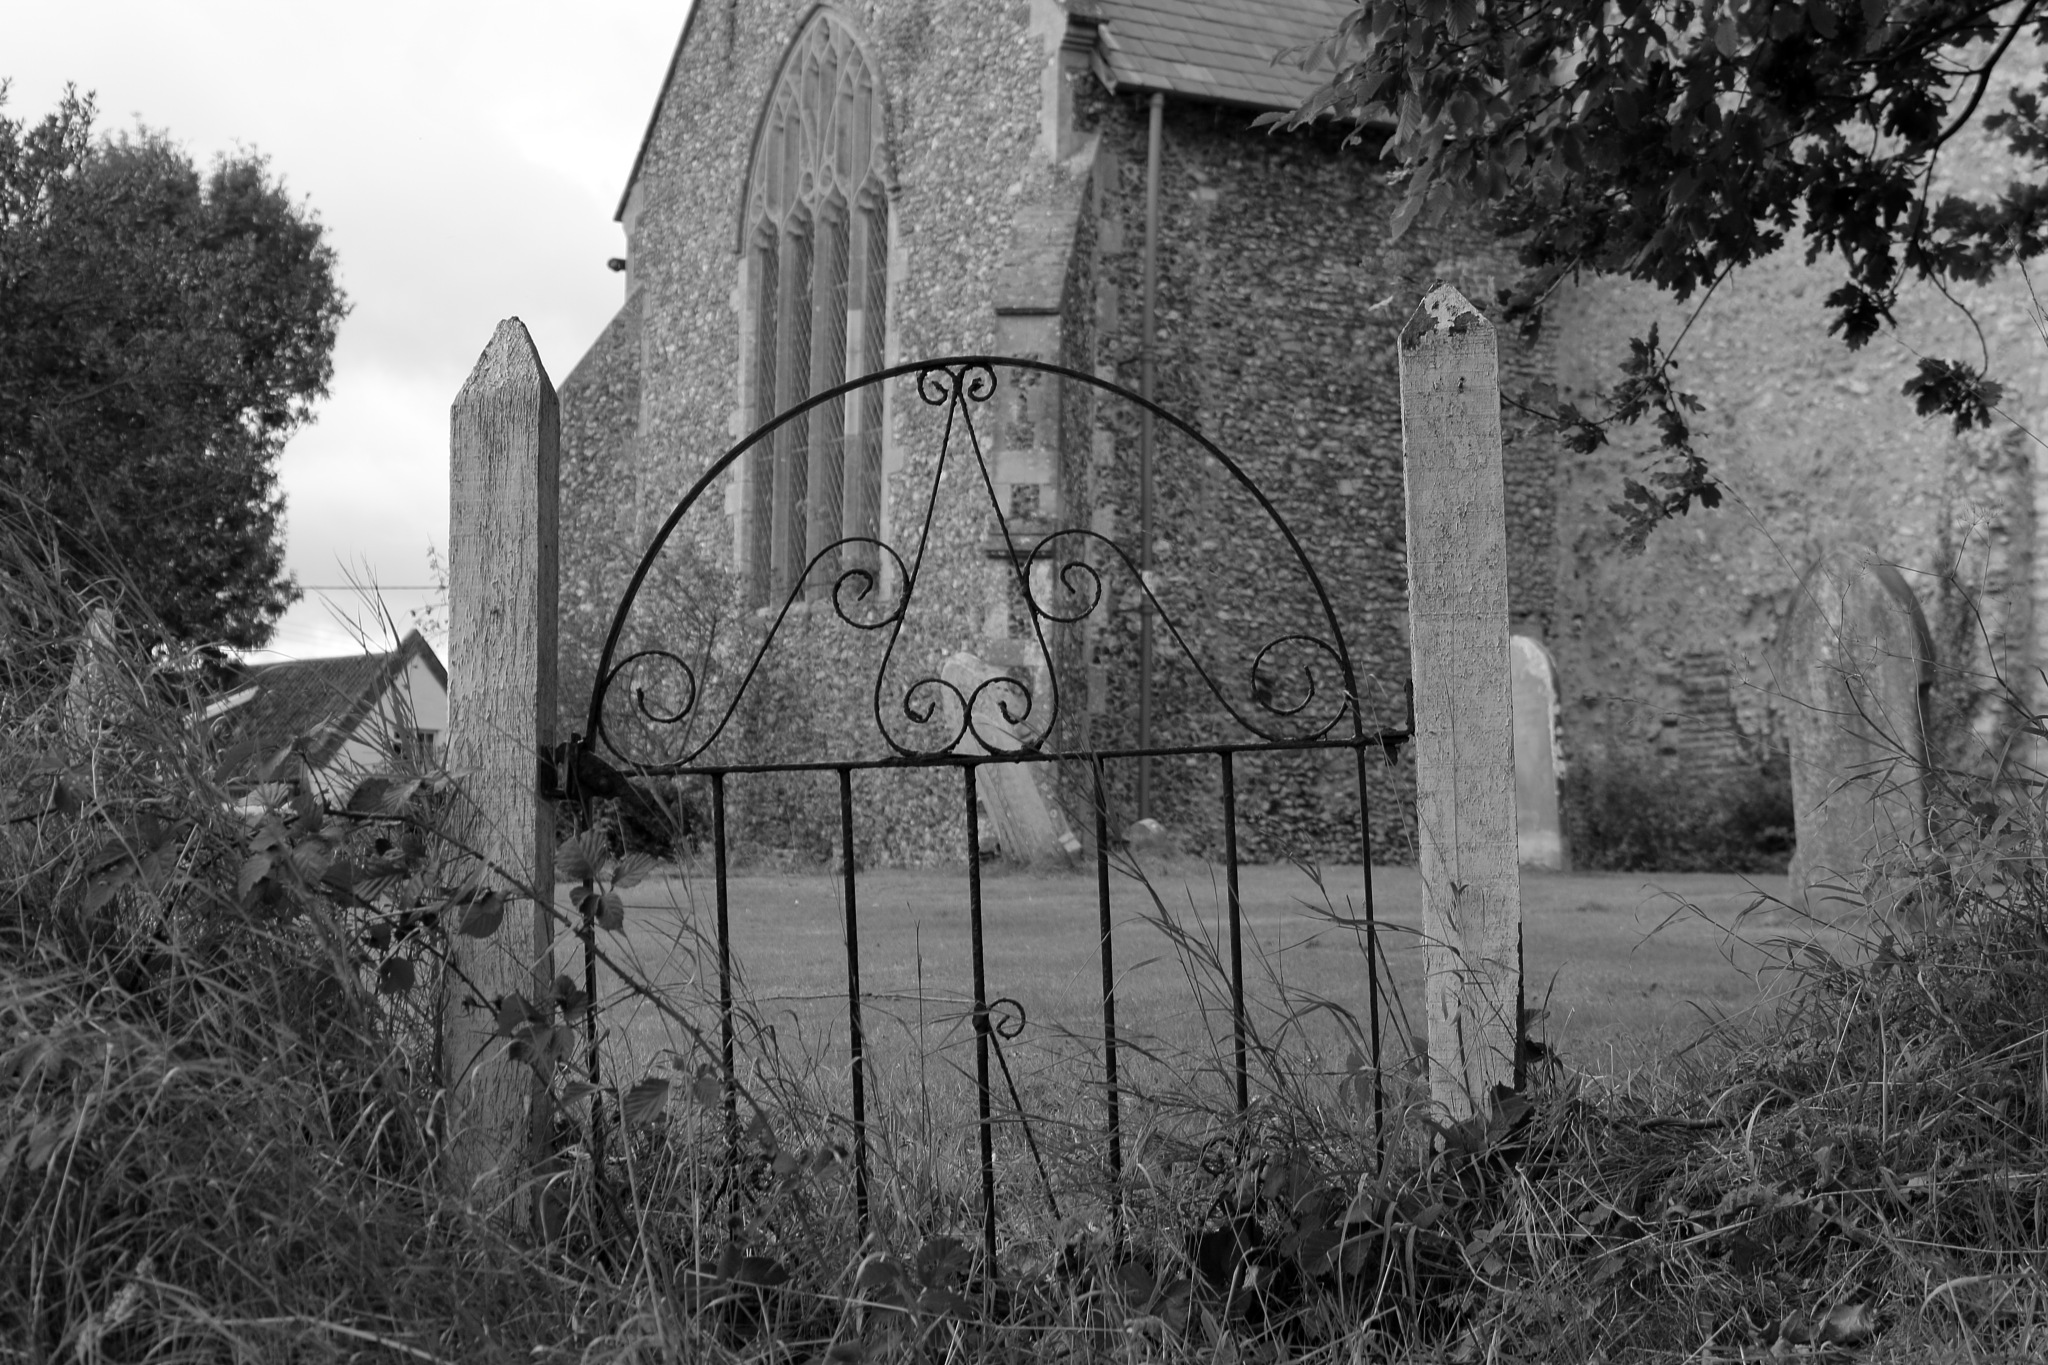 Gate by Peter Atthill